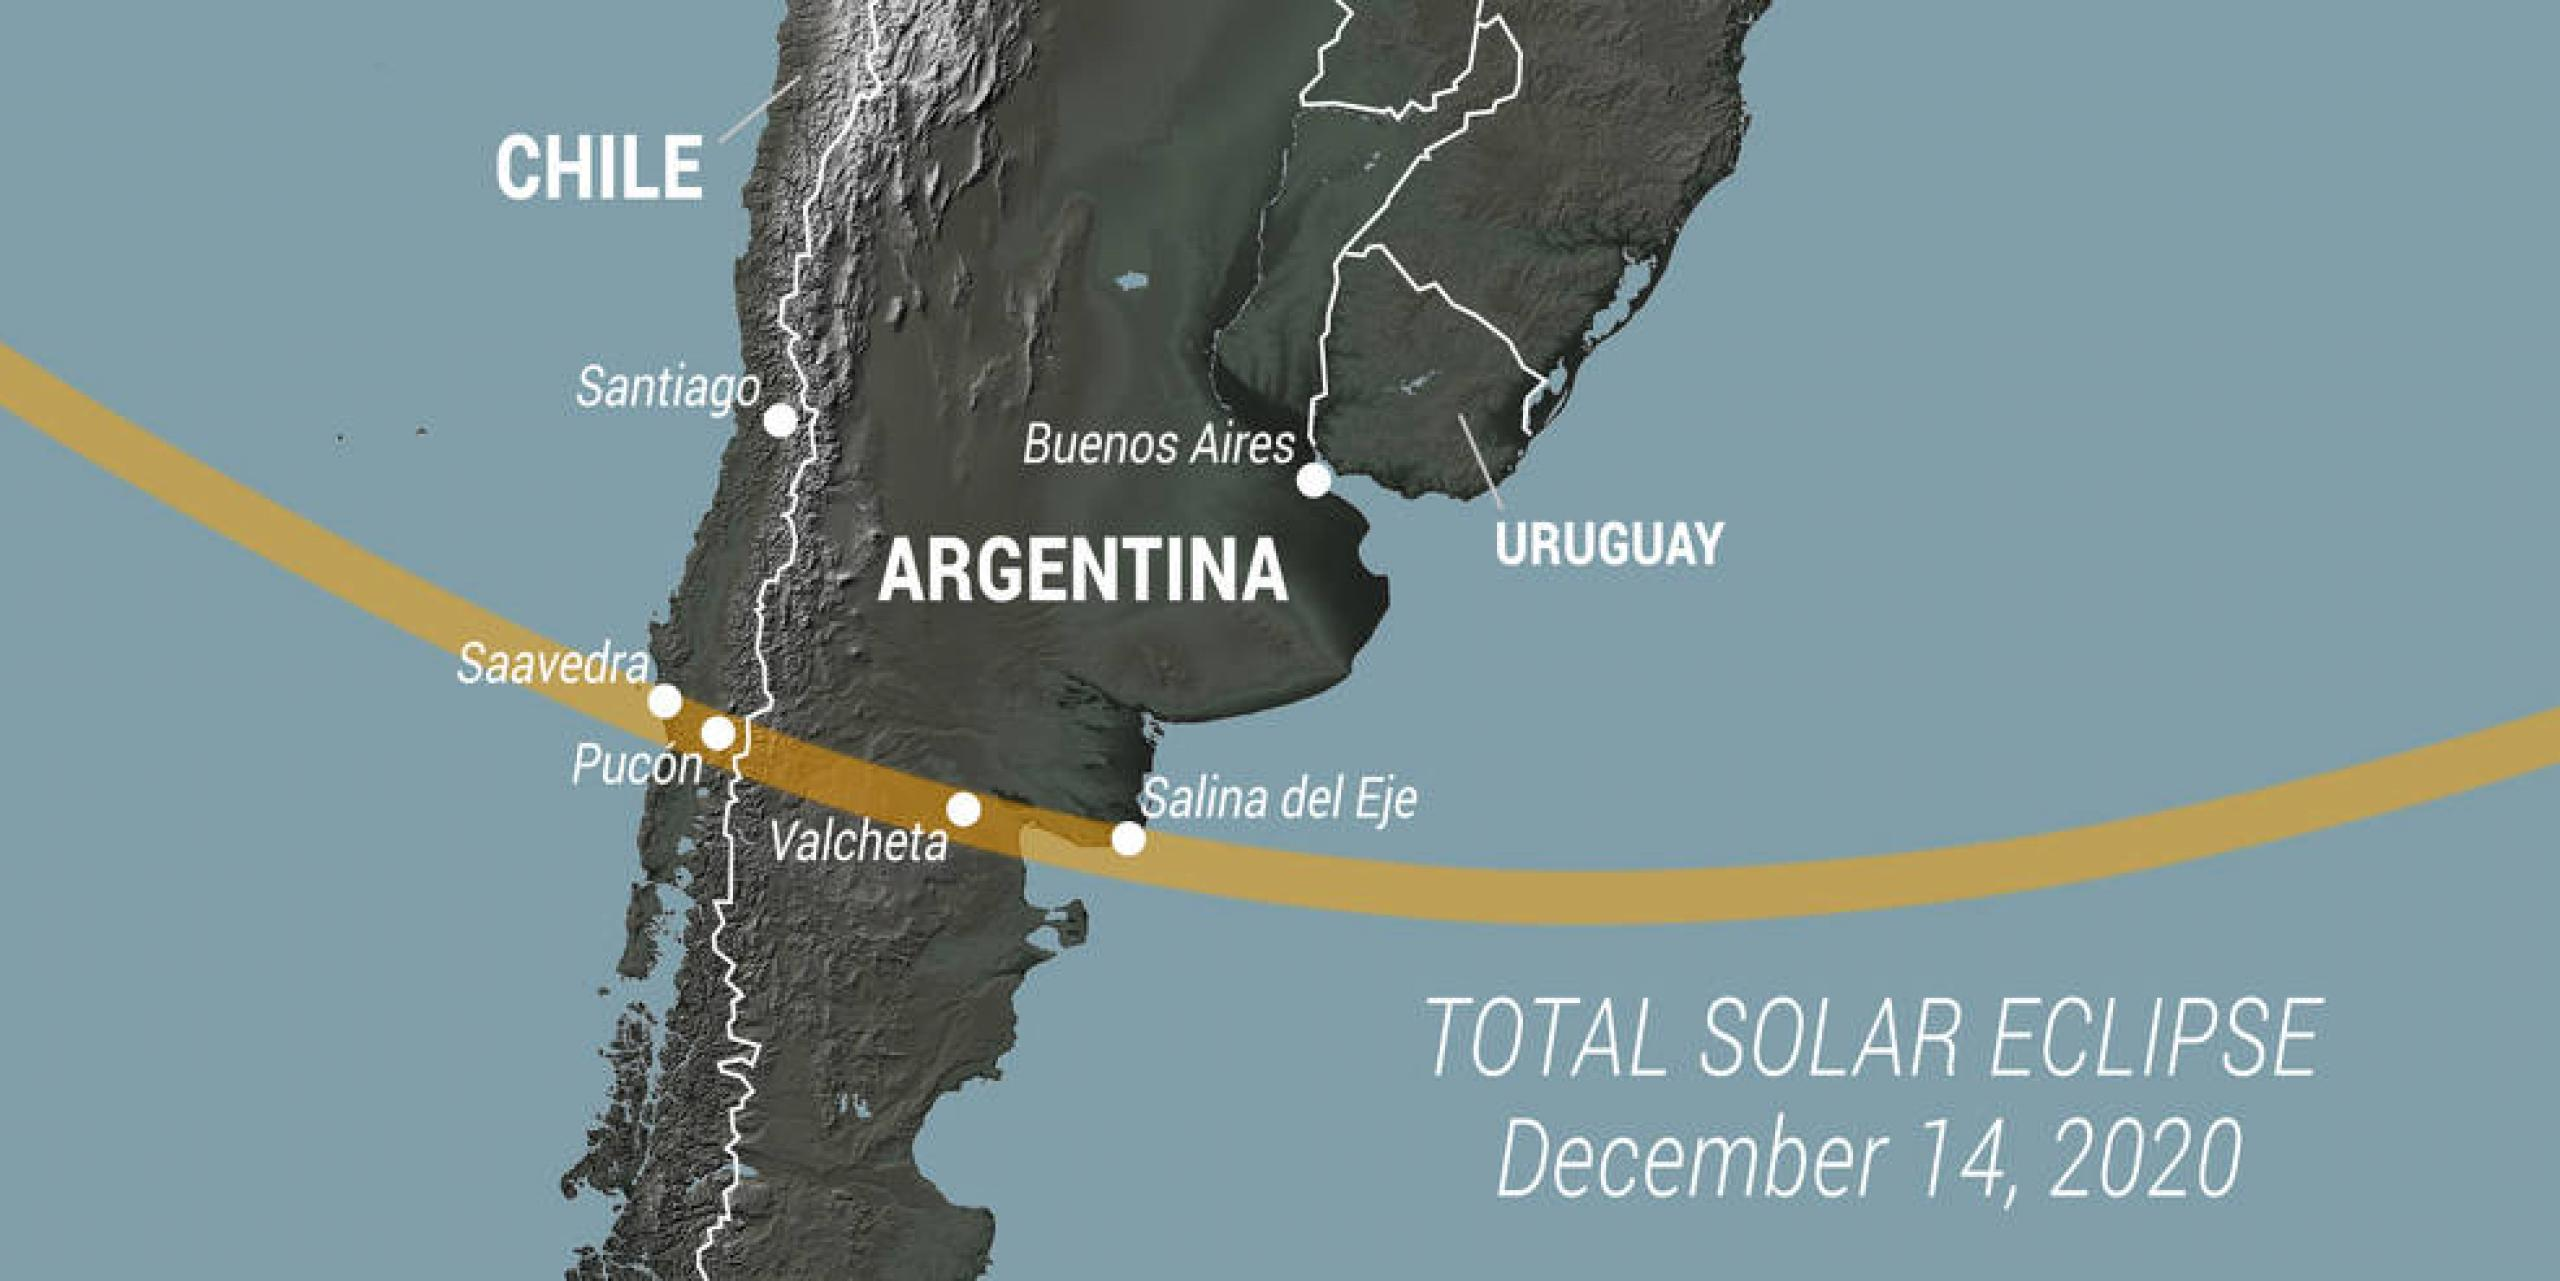 Schematic map of path of the 2020 eclipse in South America.